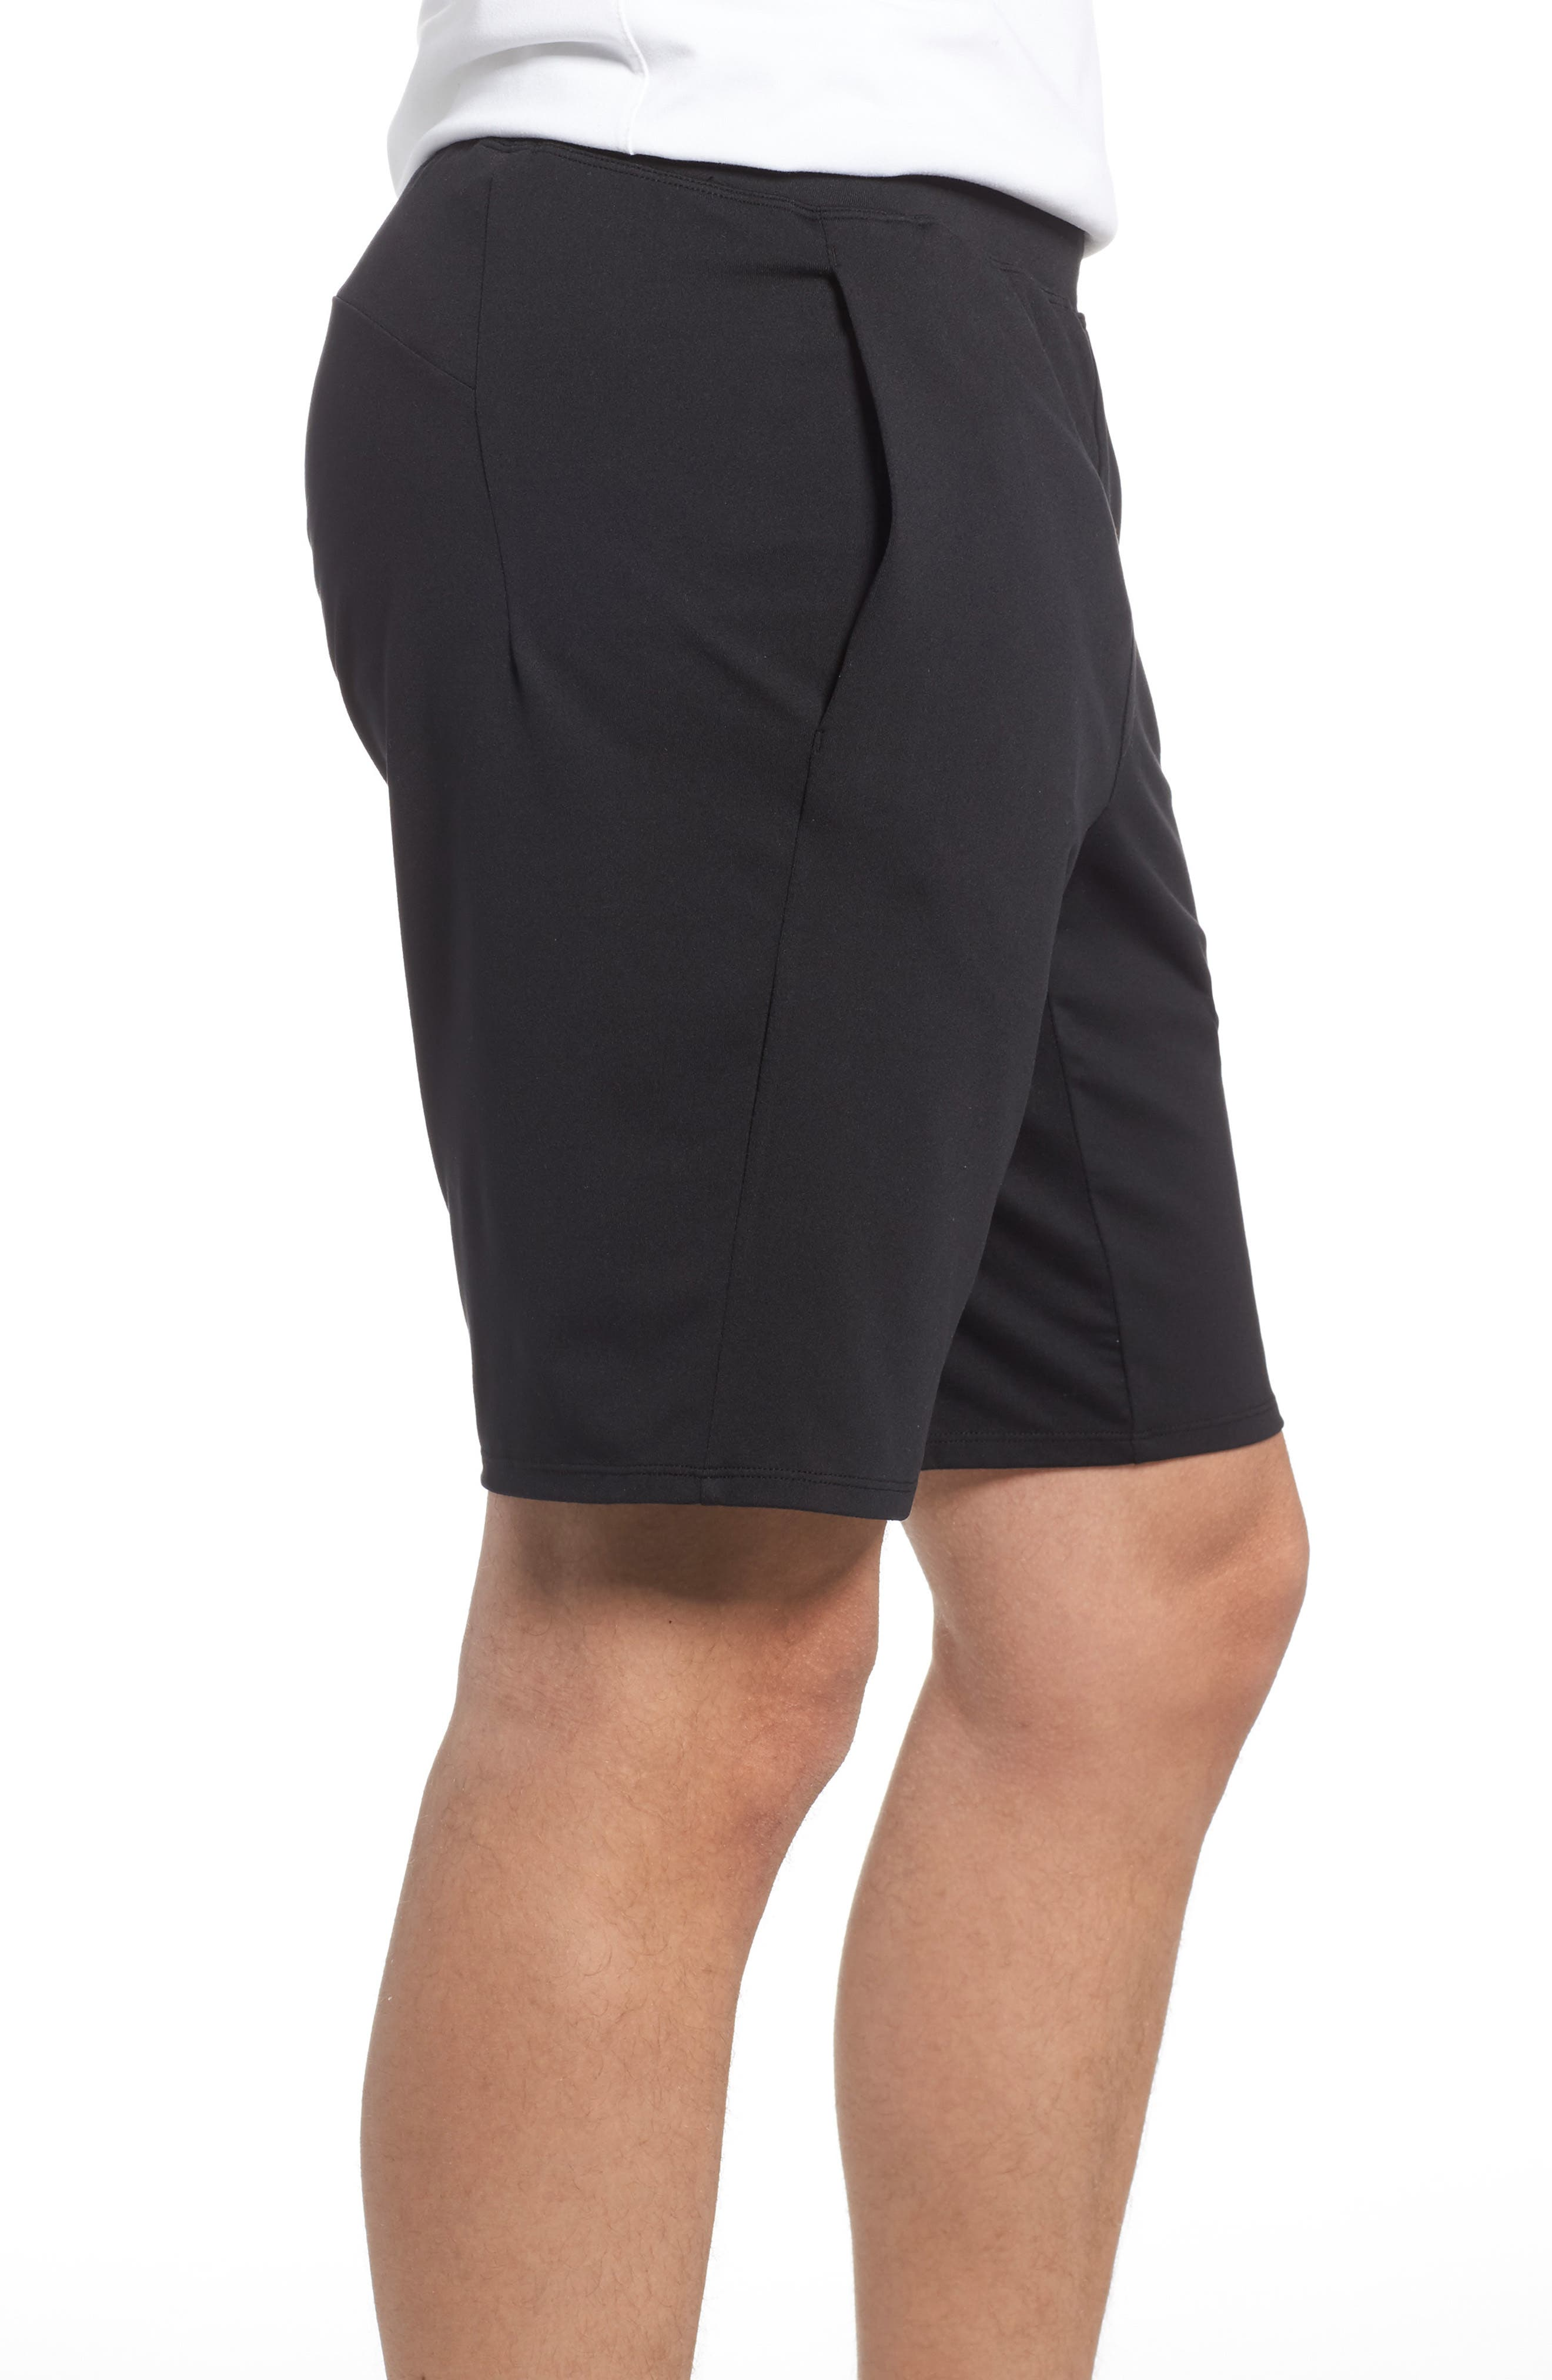 State Athletic Shorts,                             Alternate thumbnail 3, color,                             001